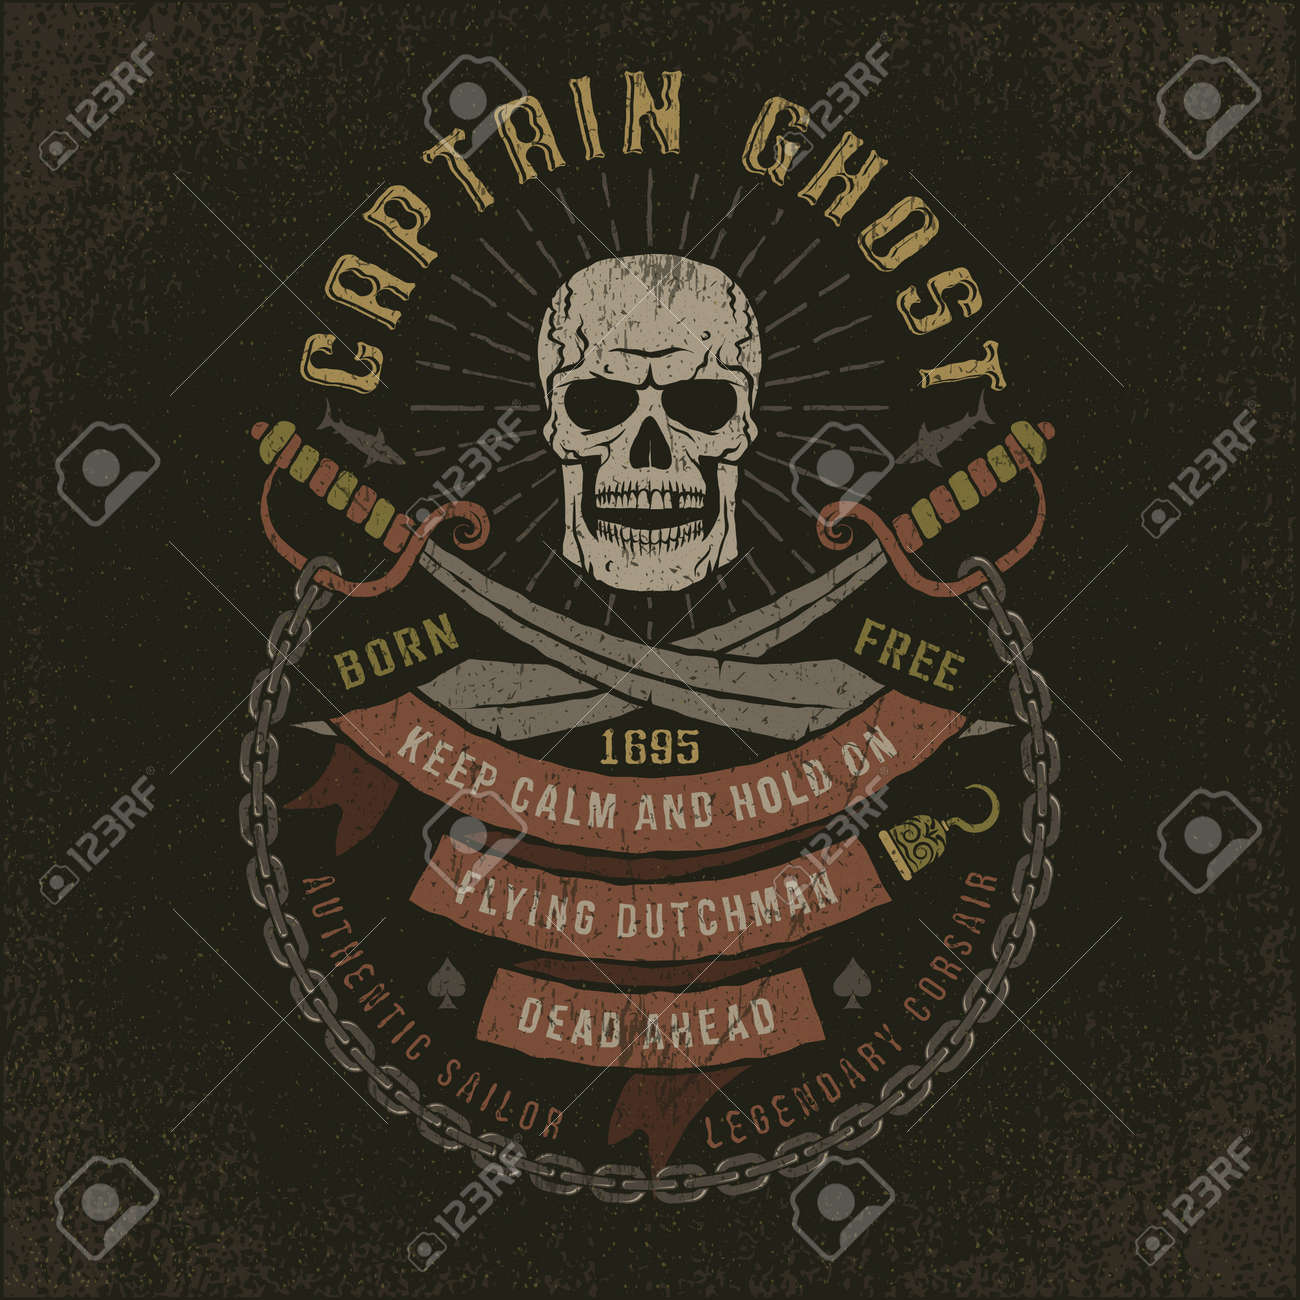 Emblem with a pirate skull in grunge style. Well suited to a T-shirt. Textures and text on separate layers. - 59766735